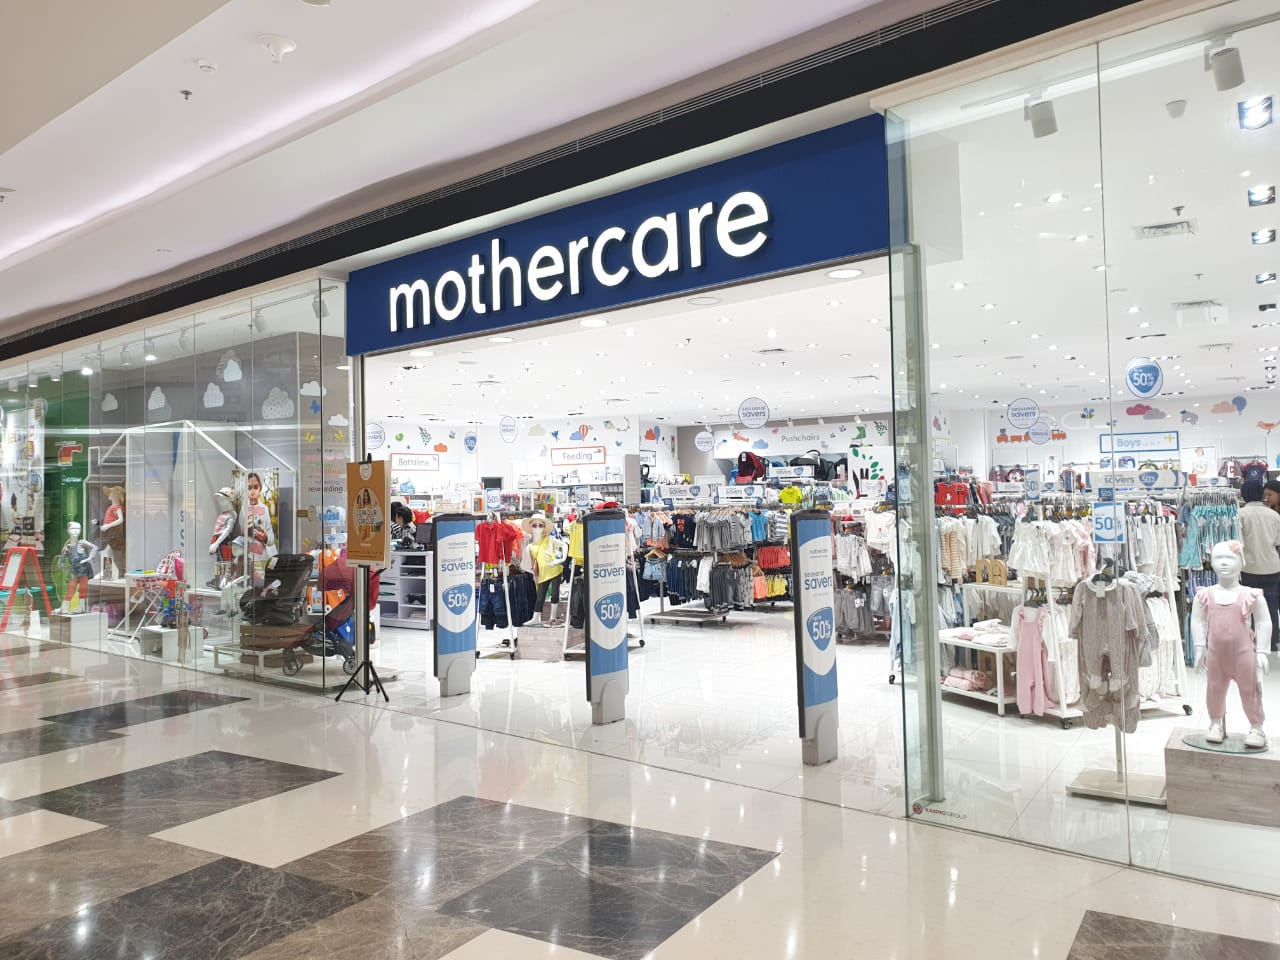 Mothercare & ELC shop front in lippo mall puri st. moritz